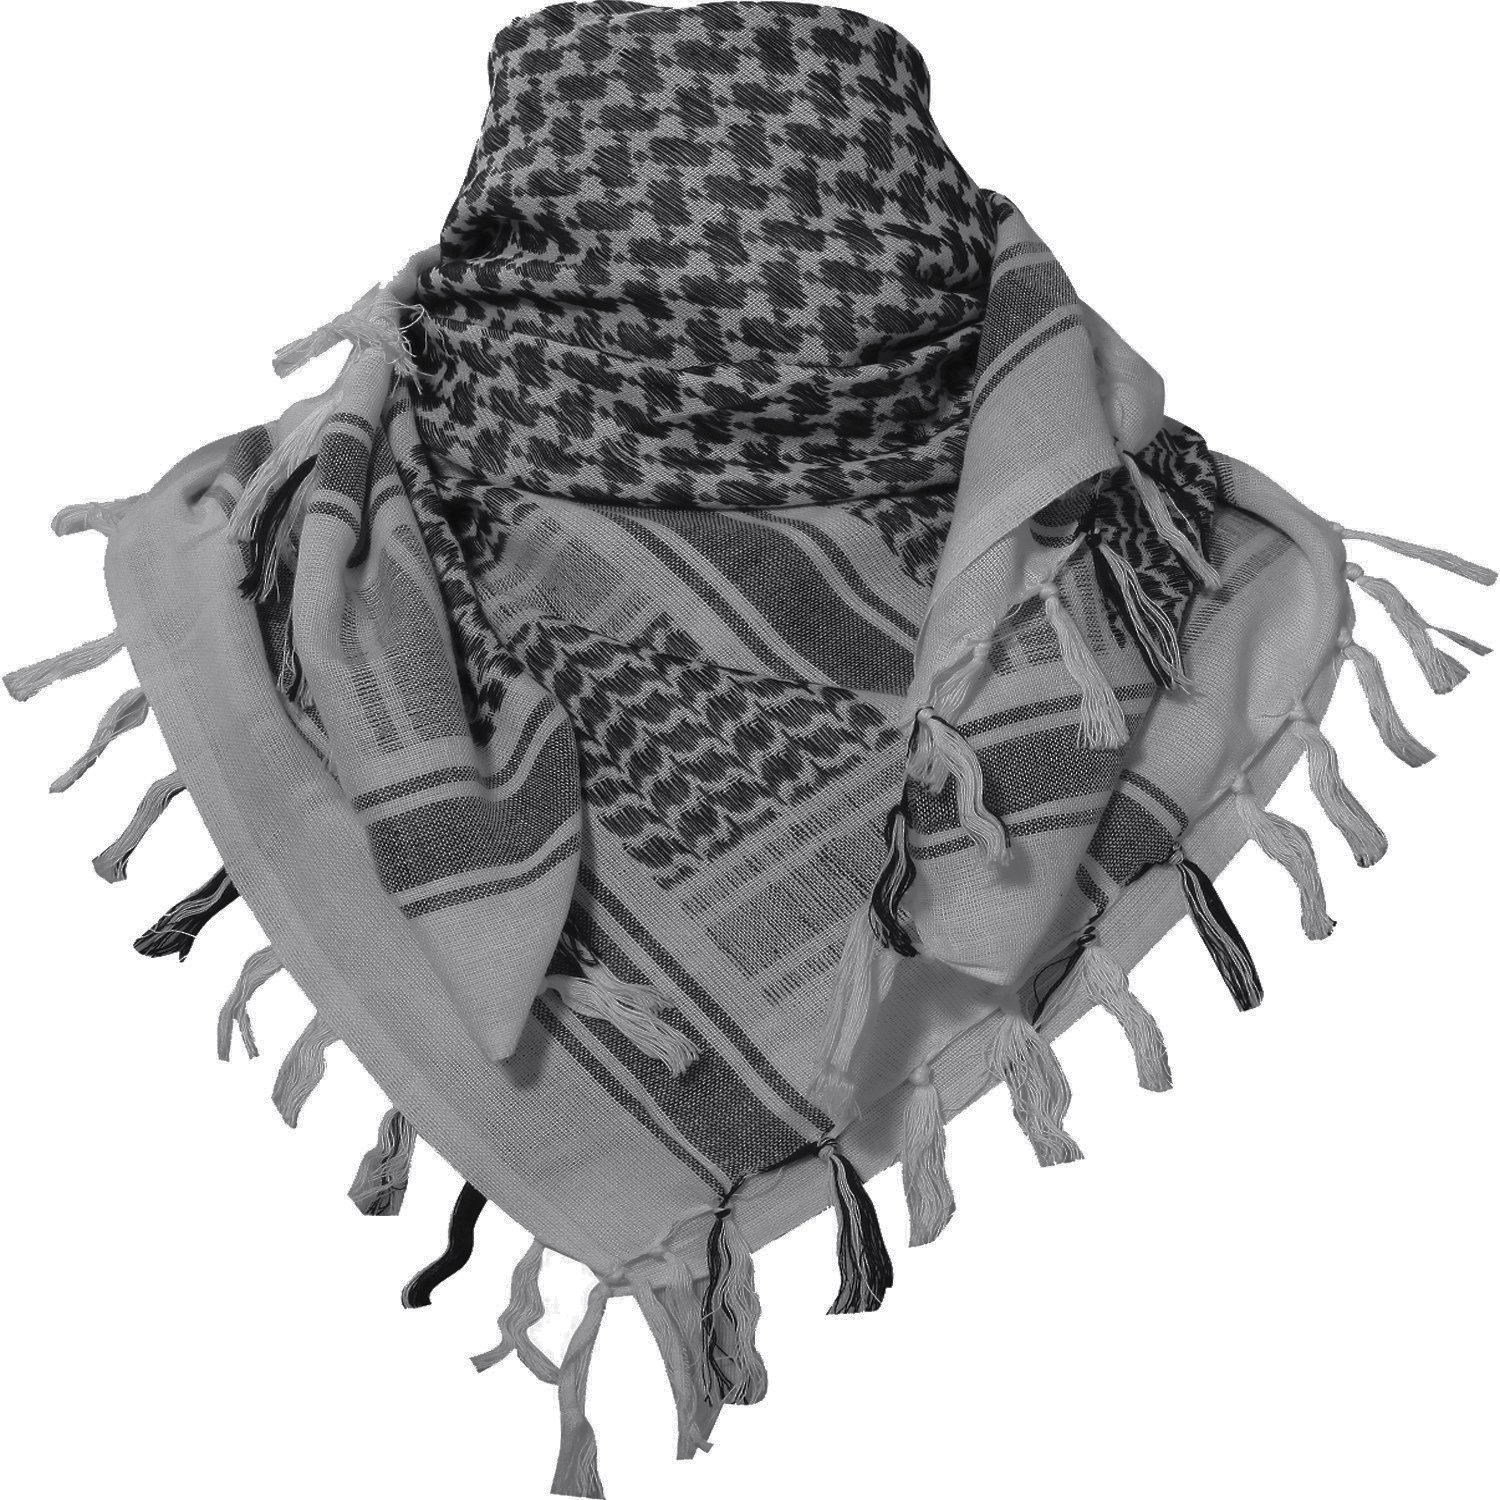 100% Cotton Keffiyeh Tactical Desert Scarf Wrap Shemagh Head Neck Arab Scarf Gray by MAGNIVIT (Image #2)